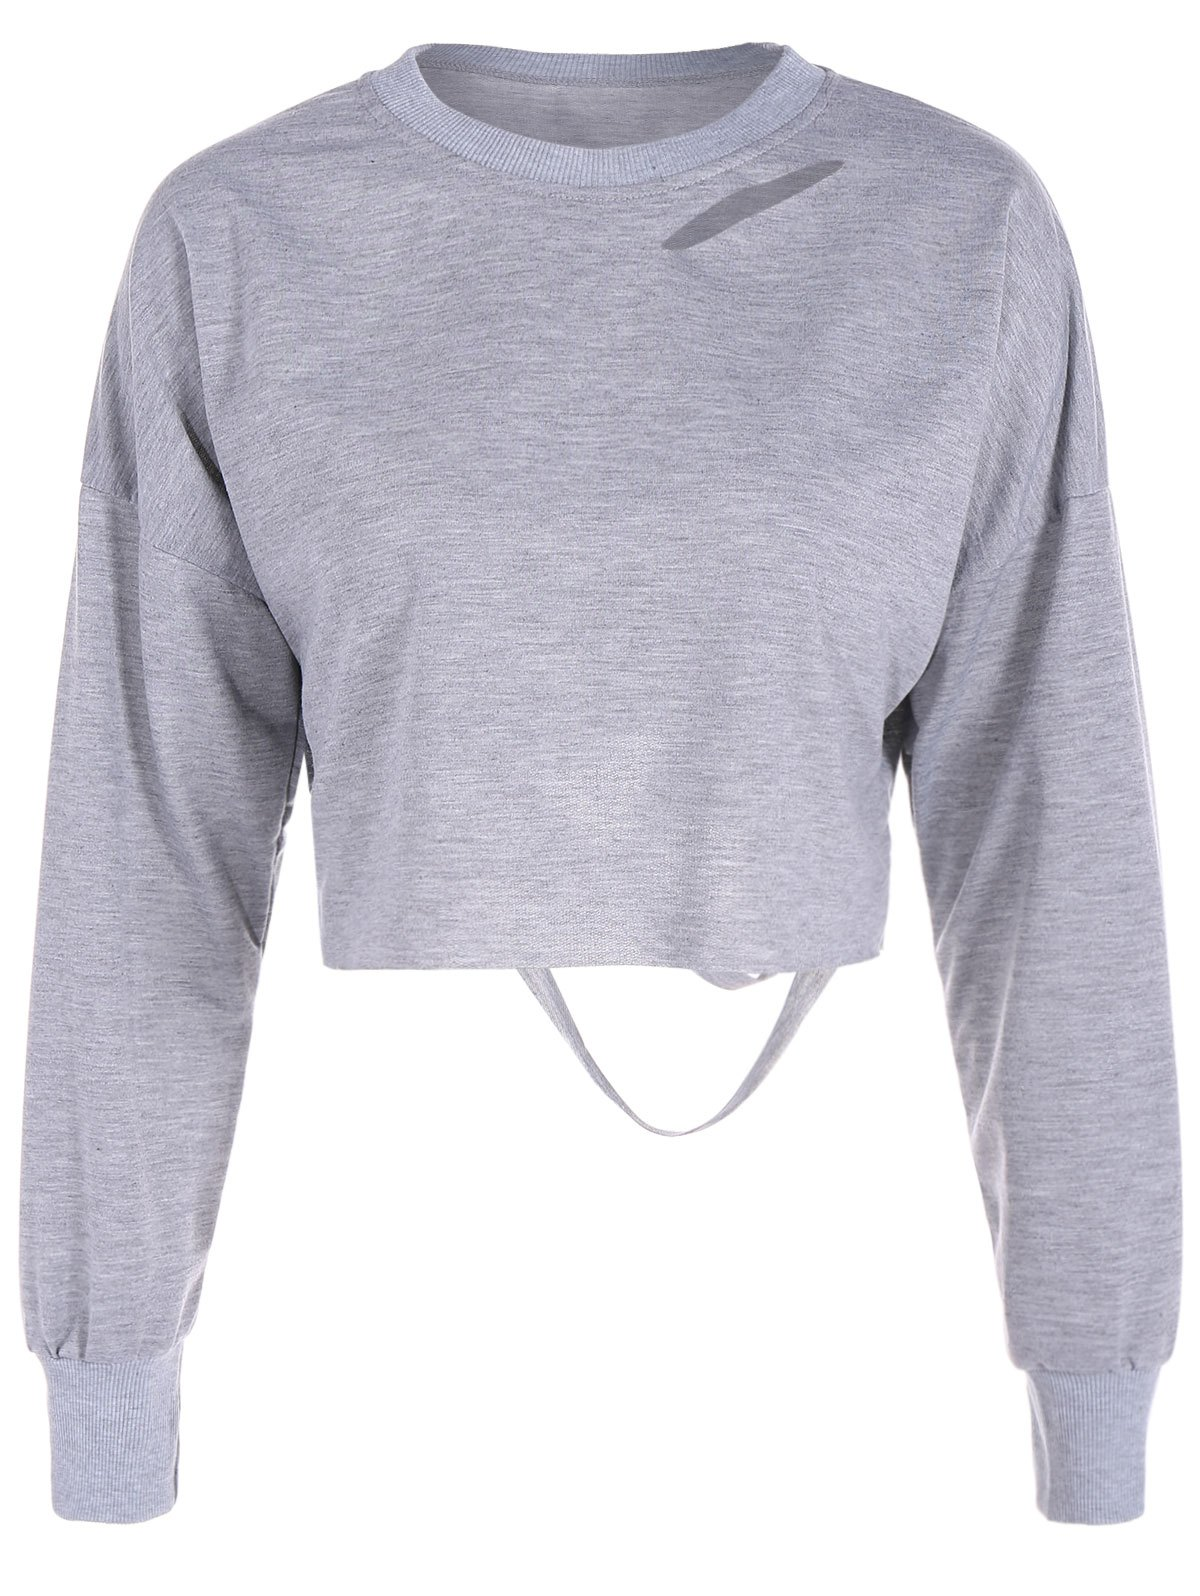 Hollow Out Long Sleeves Crop Top - GRAY XL